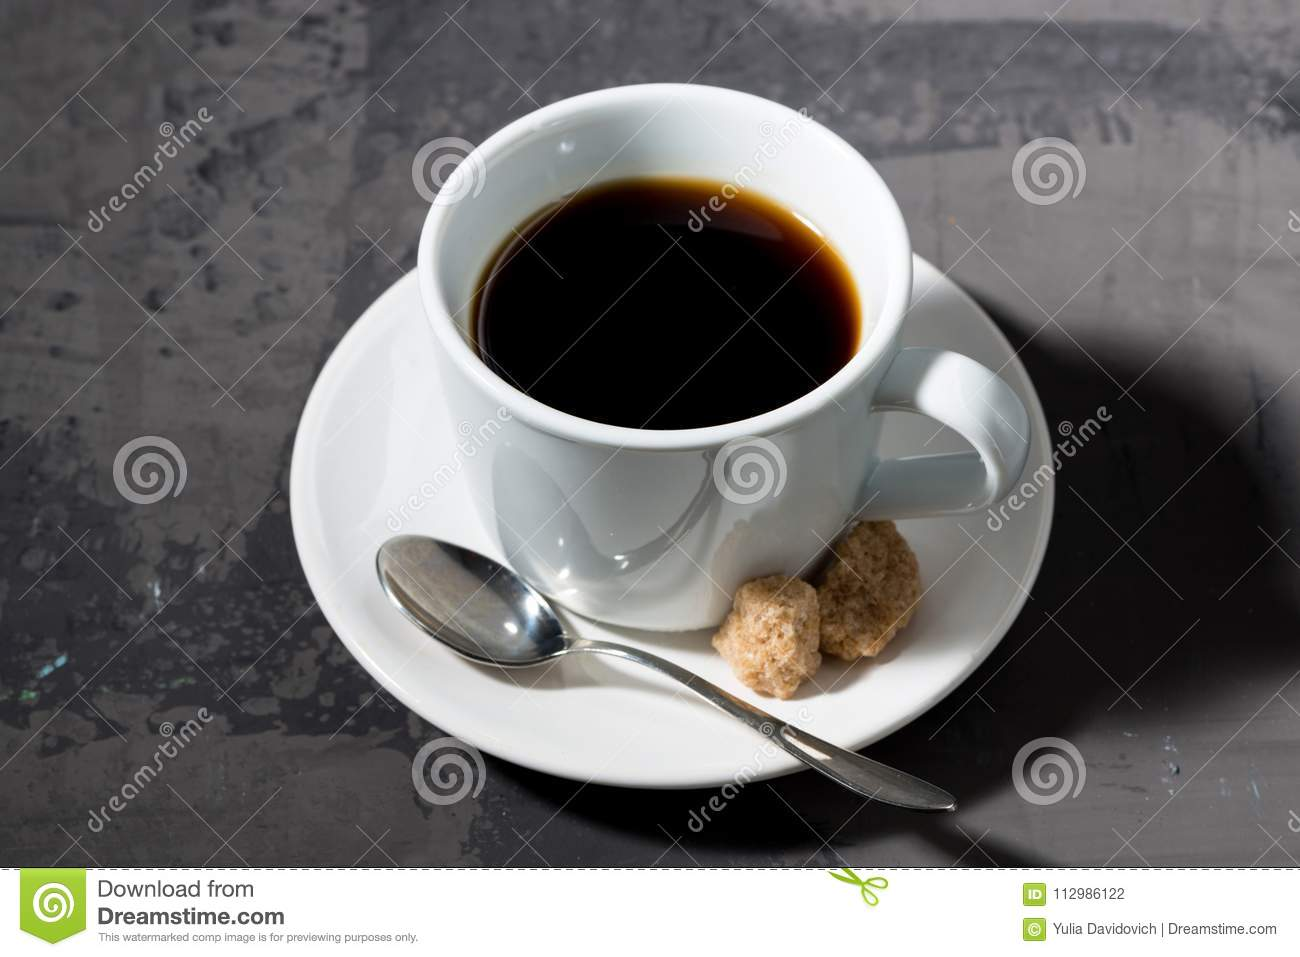 Cup of black coffee on a dark background, top view